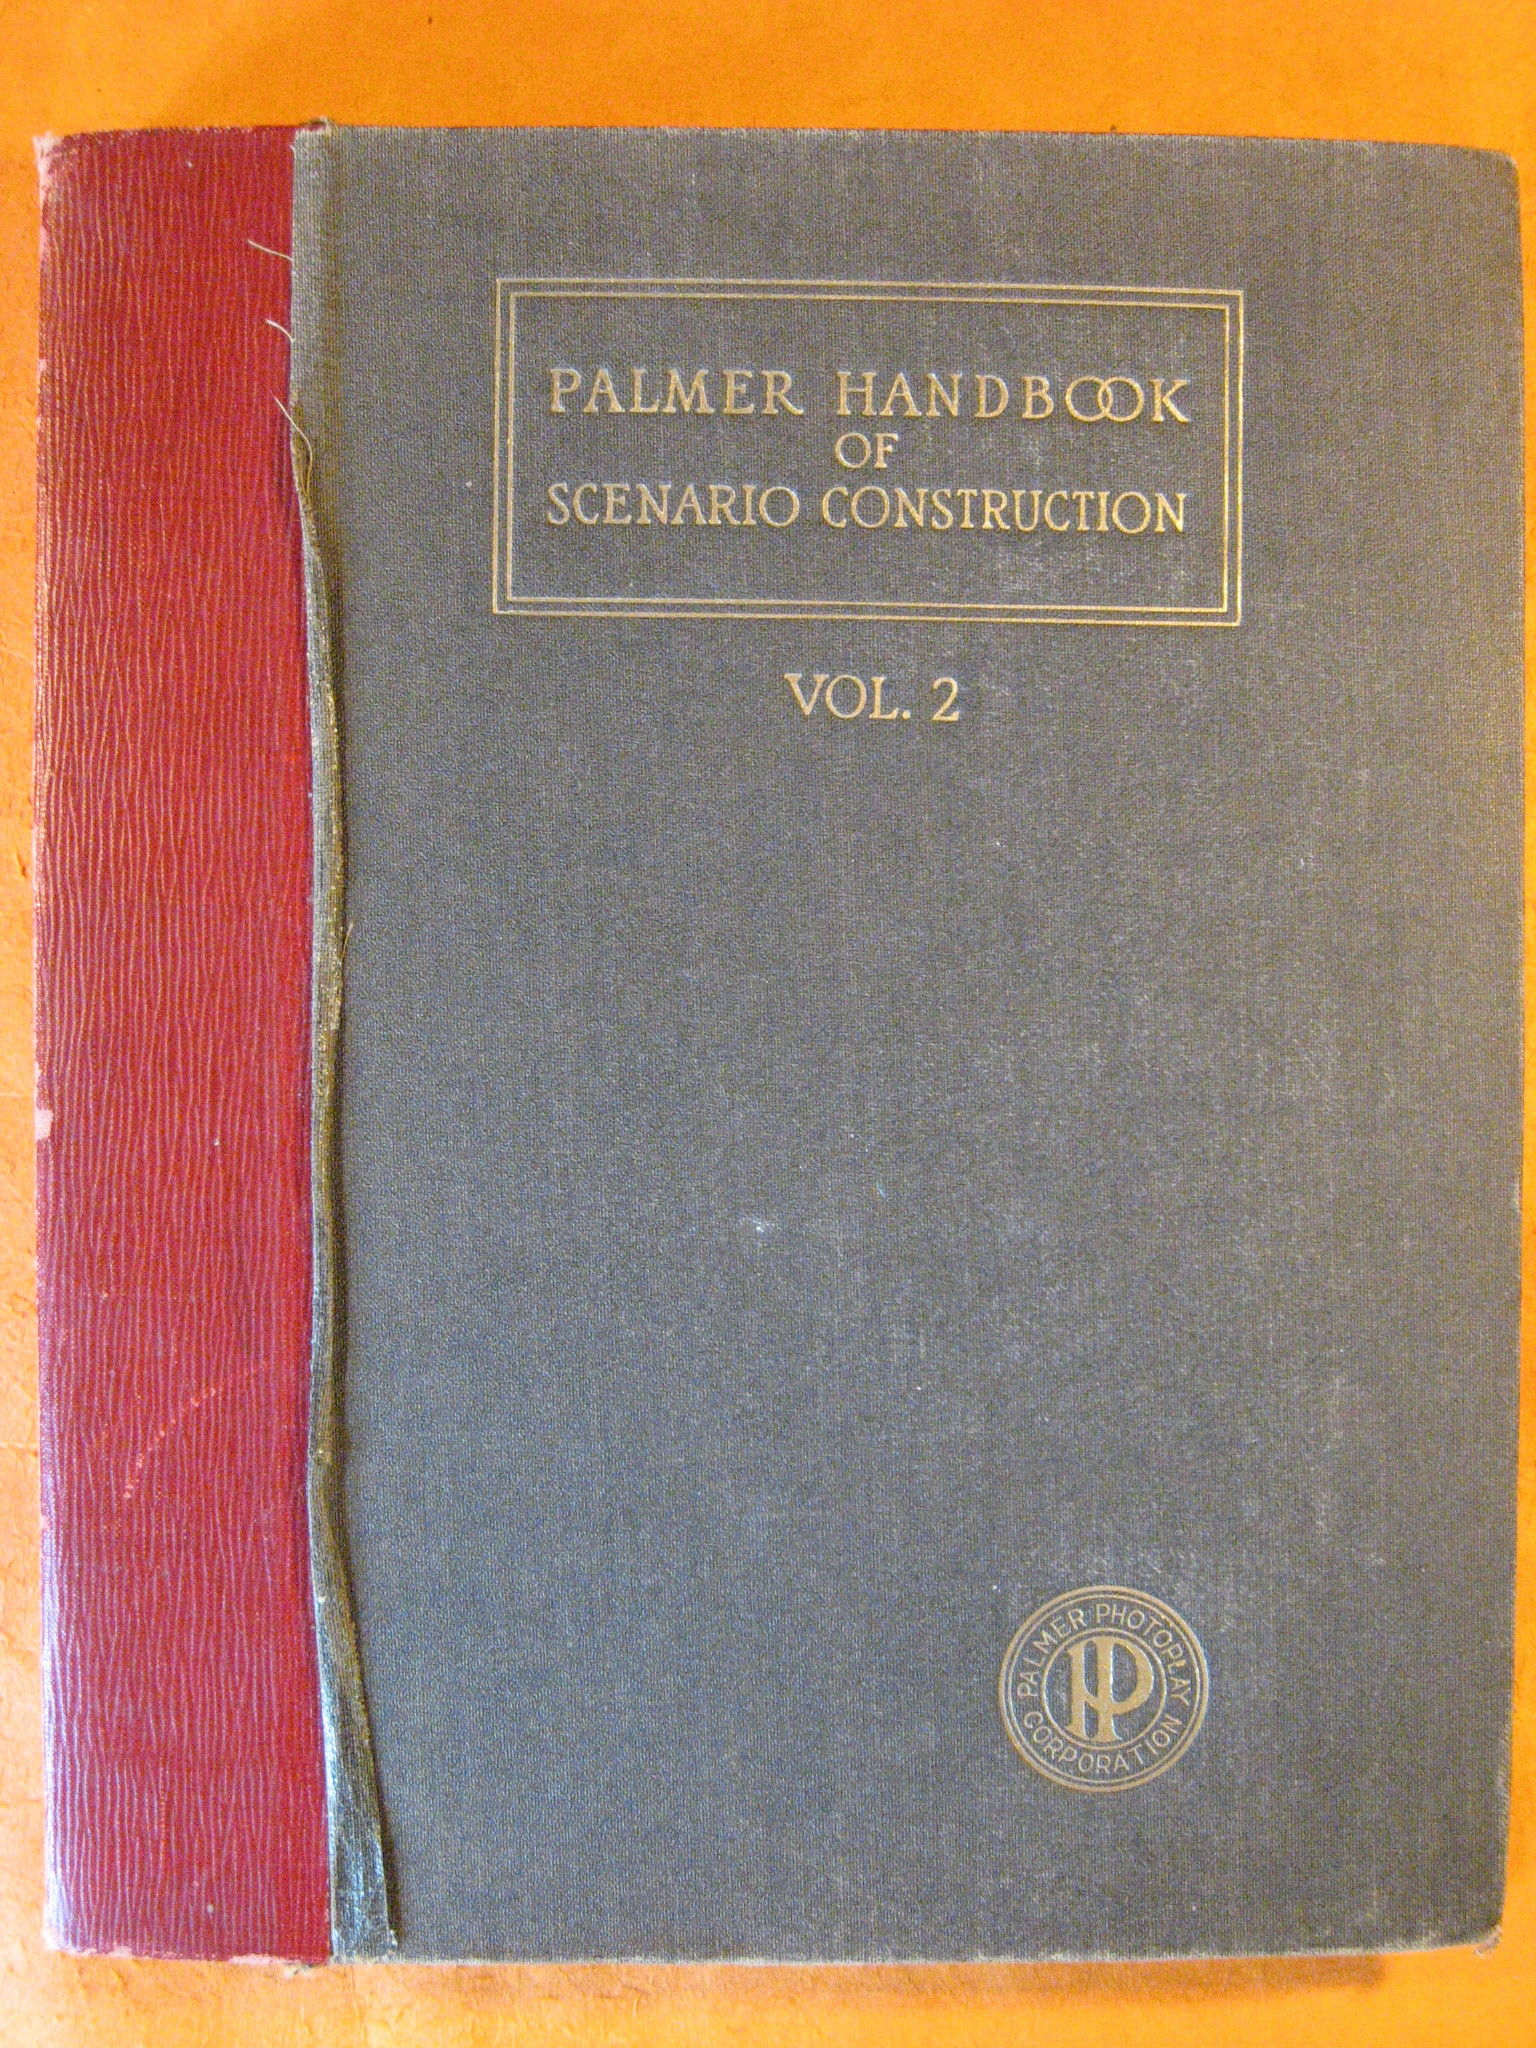 Palmer Handbook of Scenario Construction Vol. 2